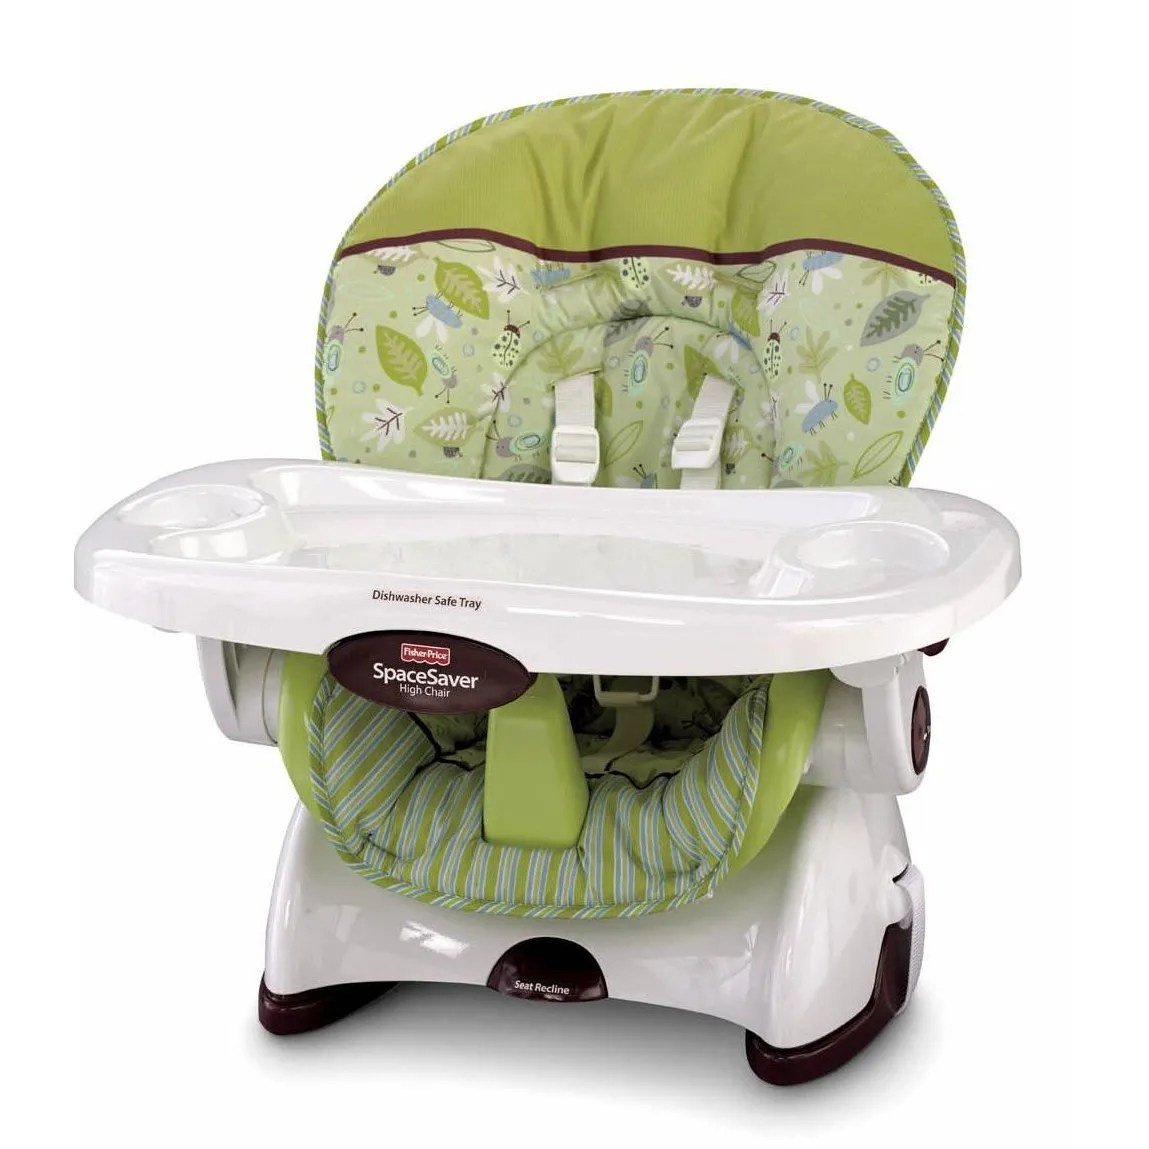 High Chair Fisher Price Cadeirinha De Alimentaçao Fisher Price Space Saver High